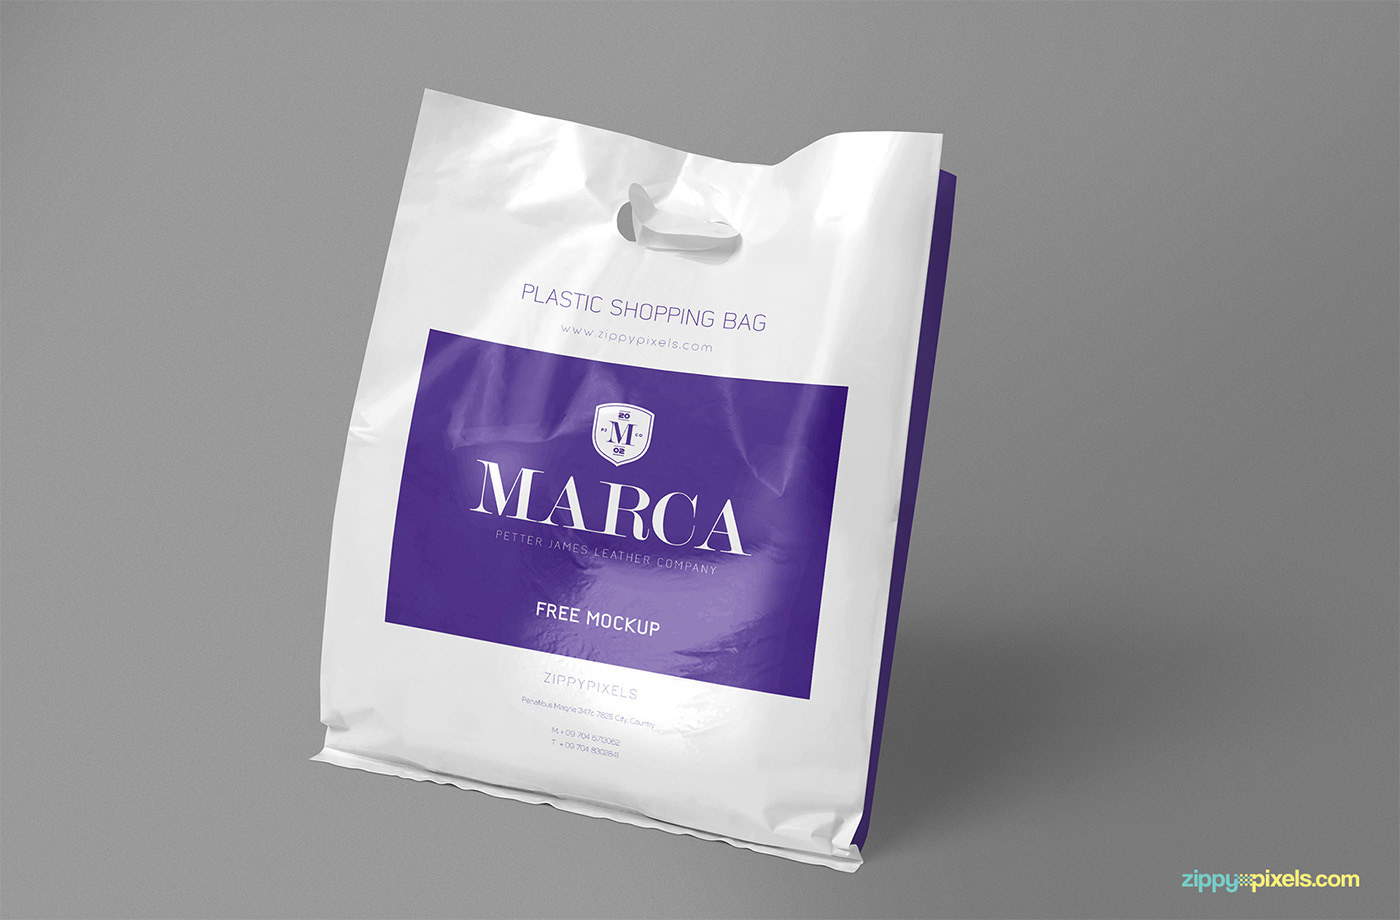 Anyway, if you still use plastics for your business, this mockup will be valuable to you! Free Plastic Bag Mockup On Behance